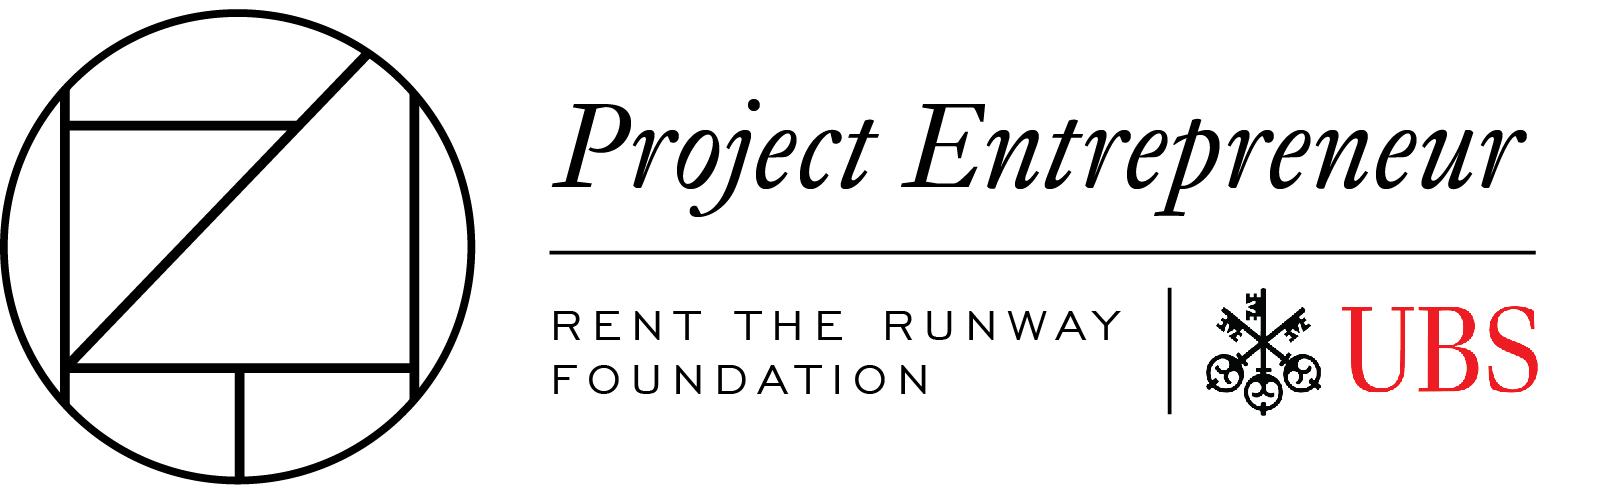 Project Entrepreneur Rings the NYSE Closing Bell®